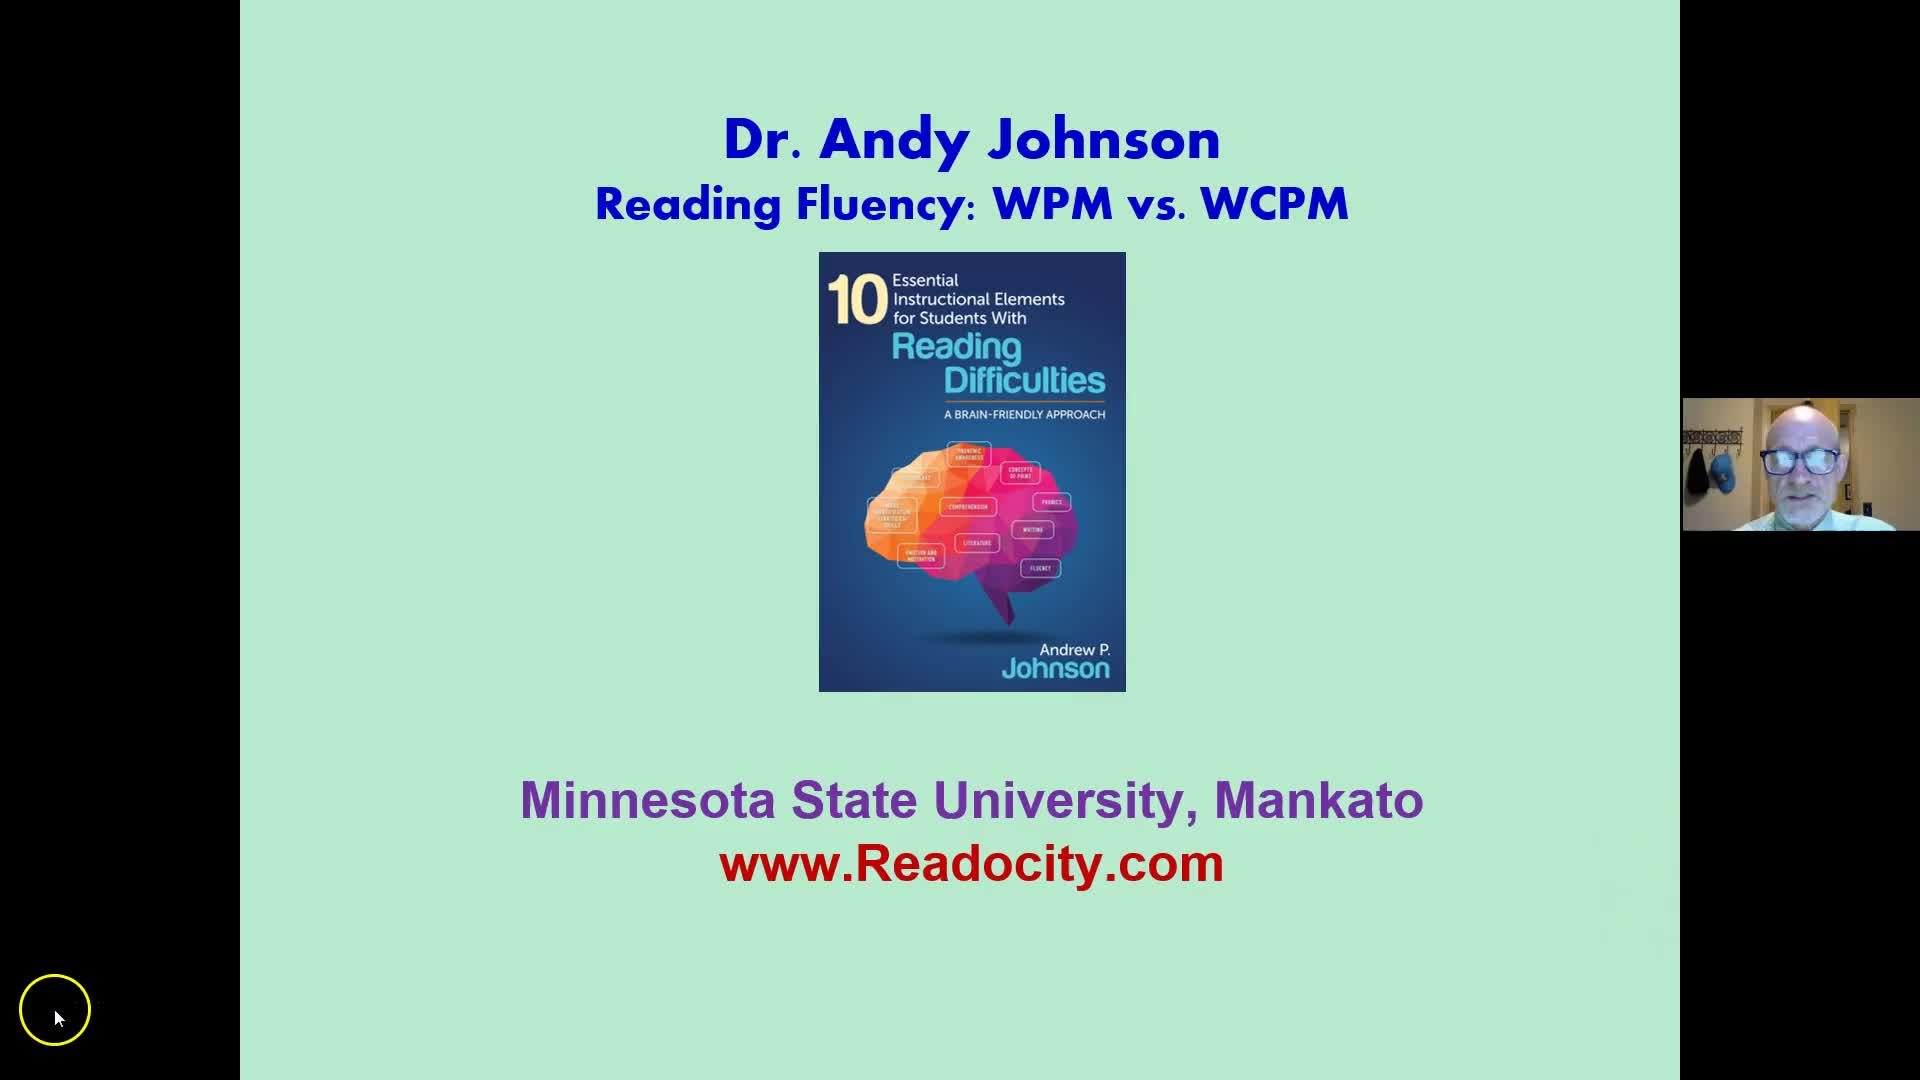 READING FLUENCY: WPM OR WCPM